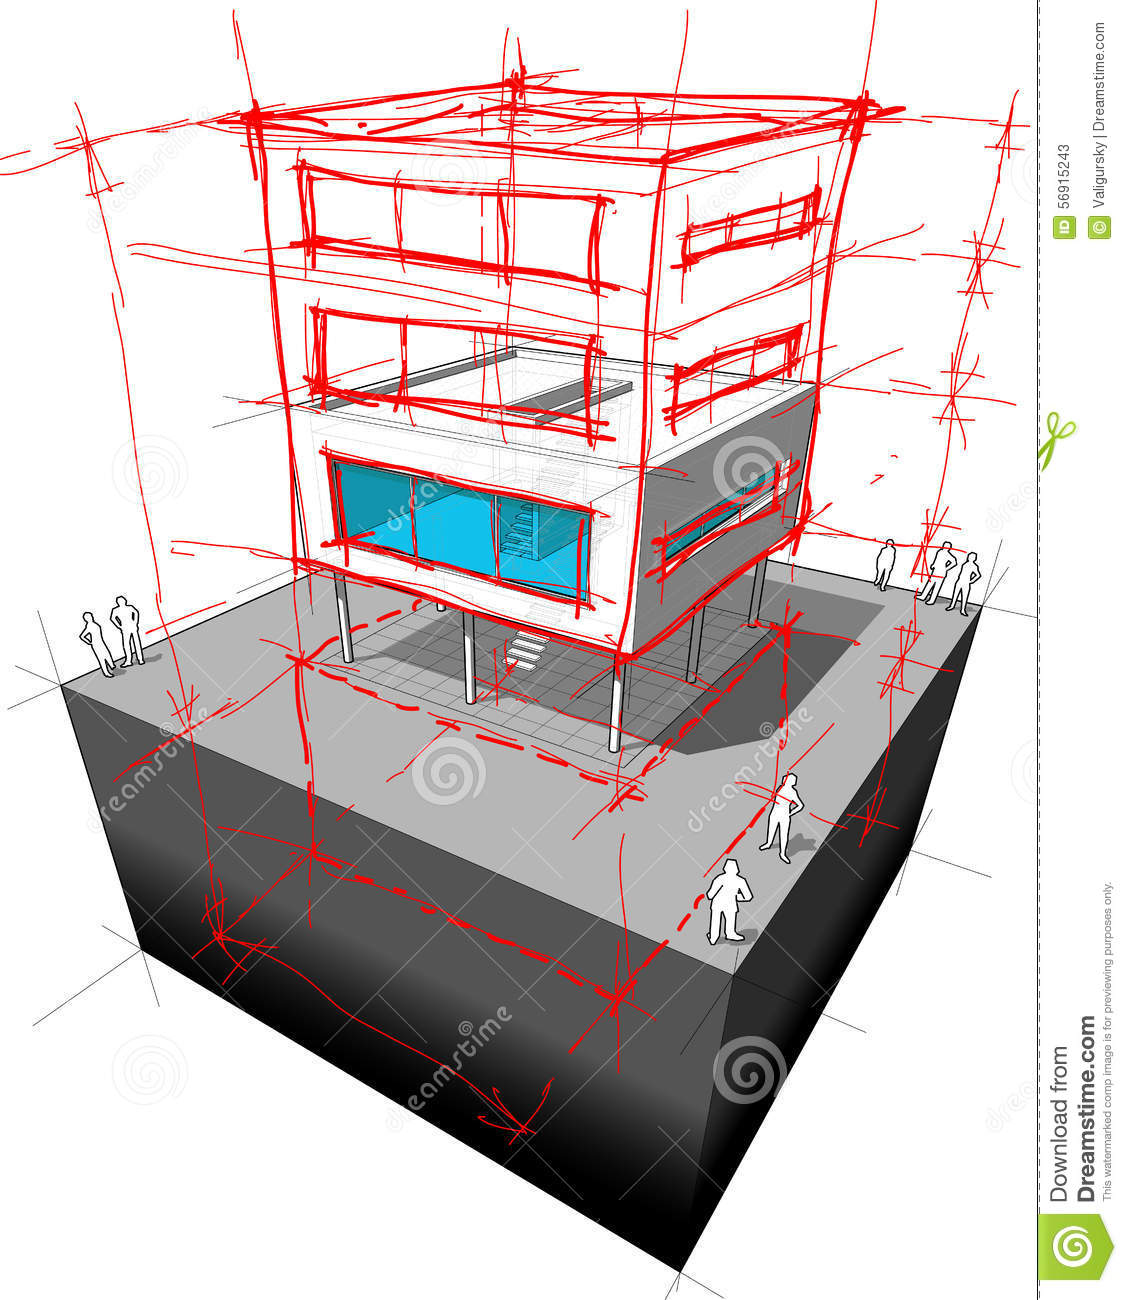 Modern house story addition diagram stock vector image for Modern house schematic